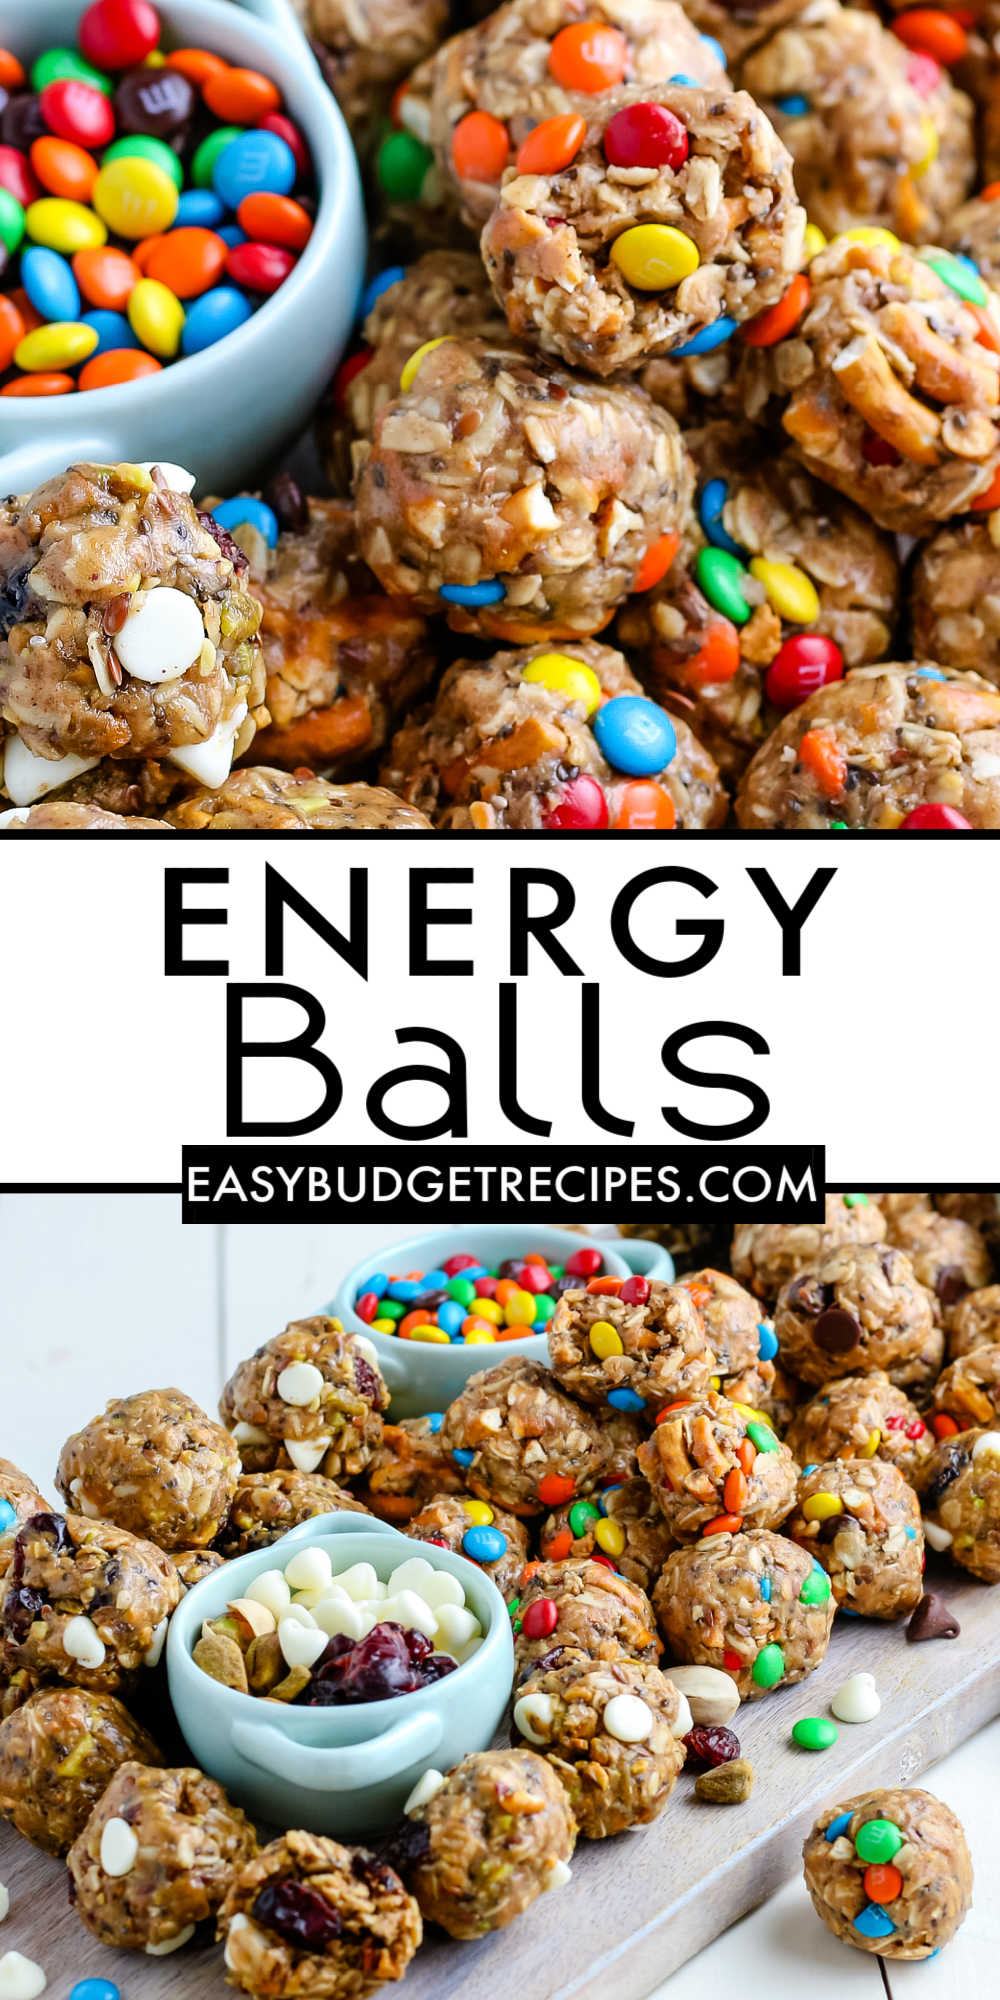 This Energy Balls recipe is so easy to make and full of delicious ingredients. Our recipe includes 3 different flavor variations that you'll love snacking on all of them. via @easybudgetrecipes